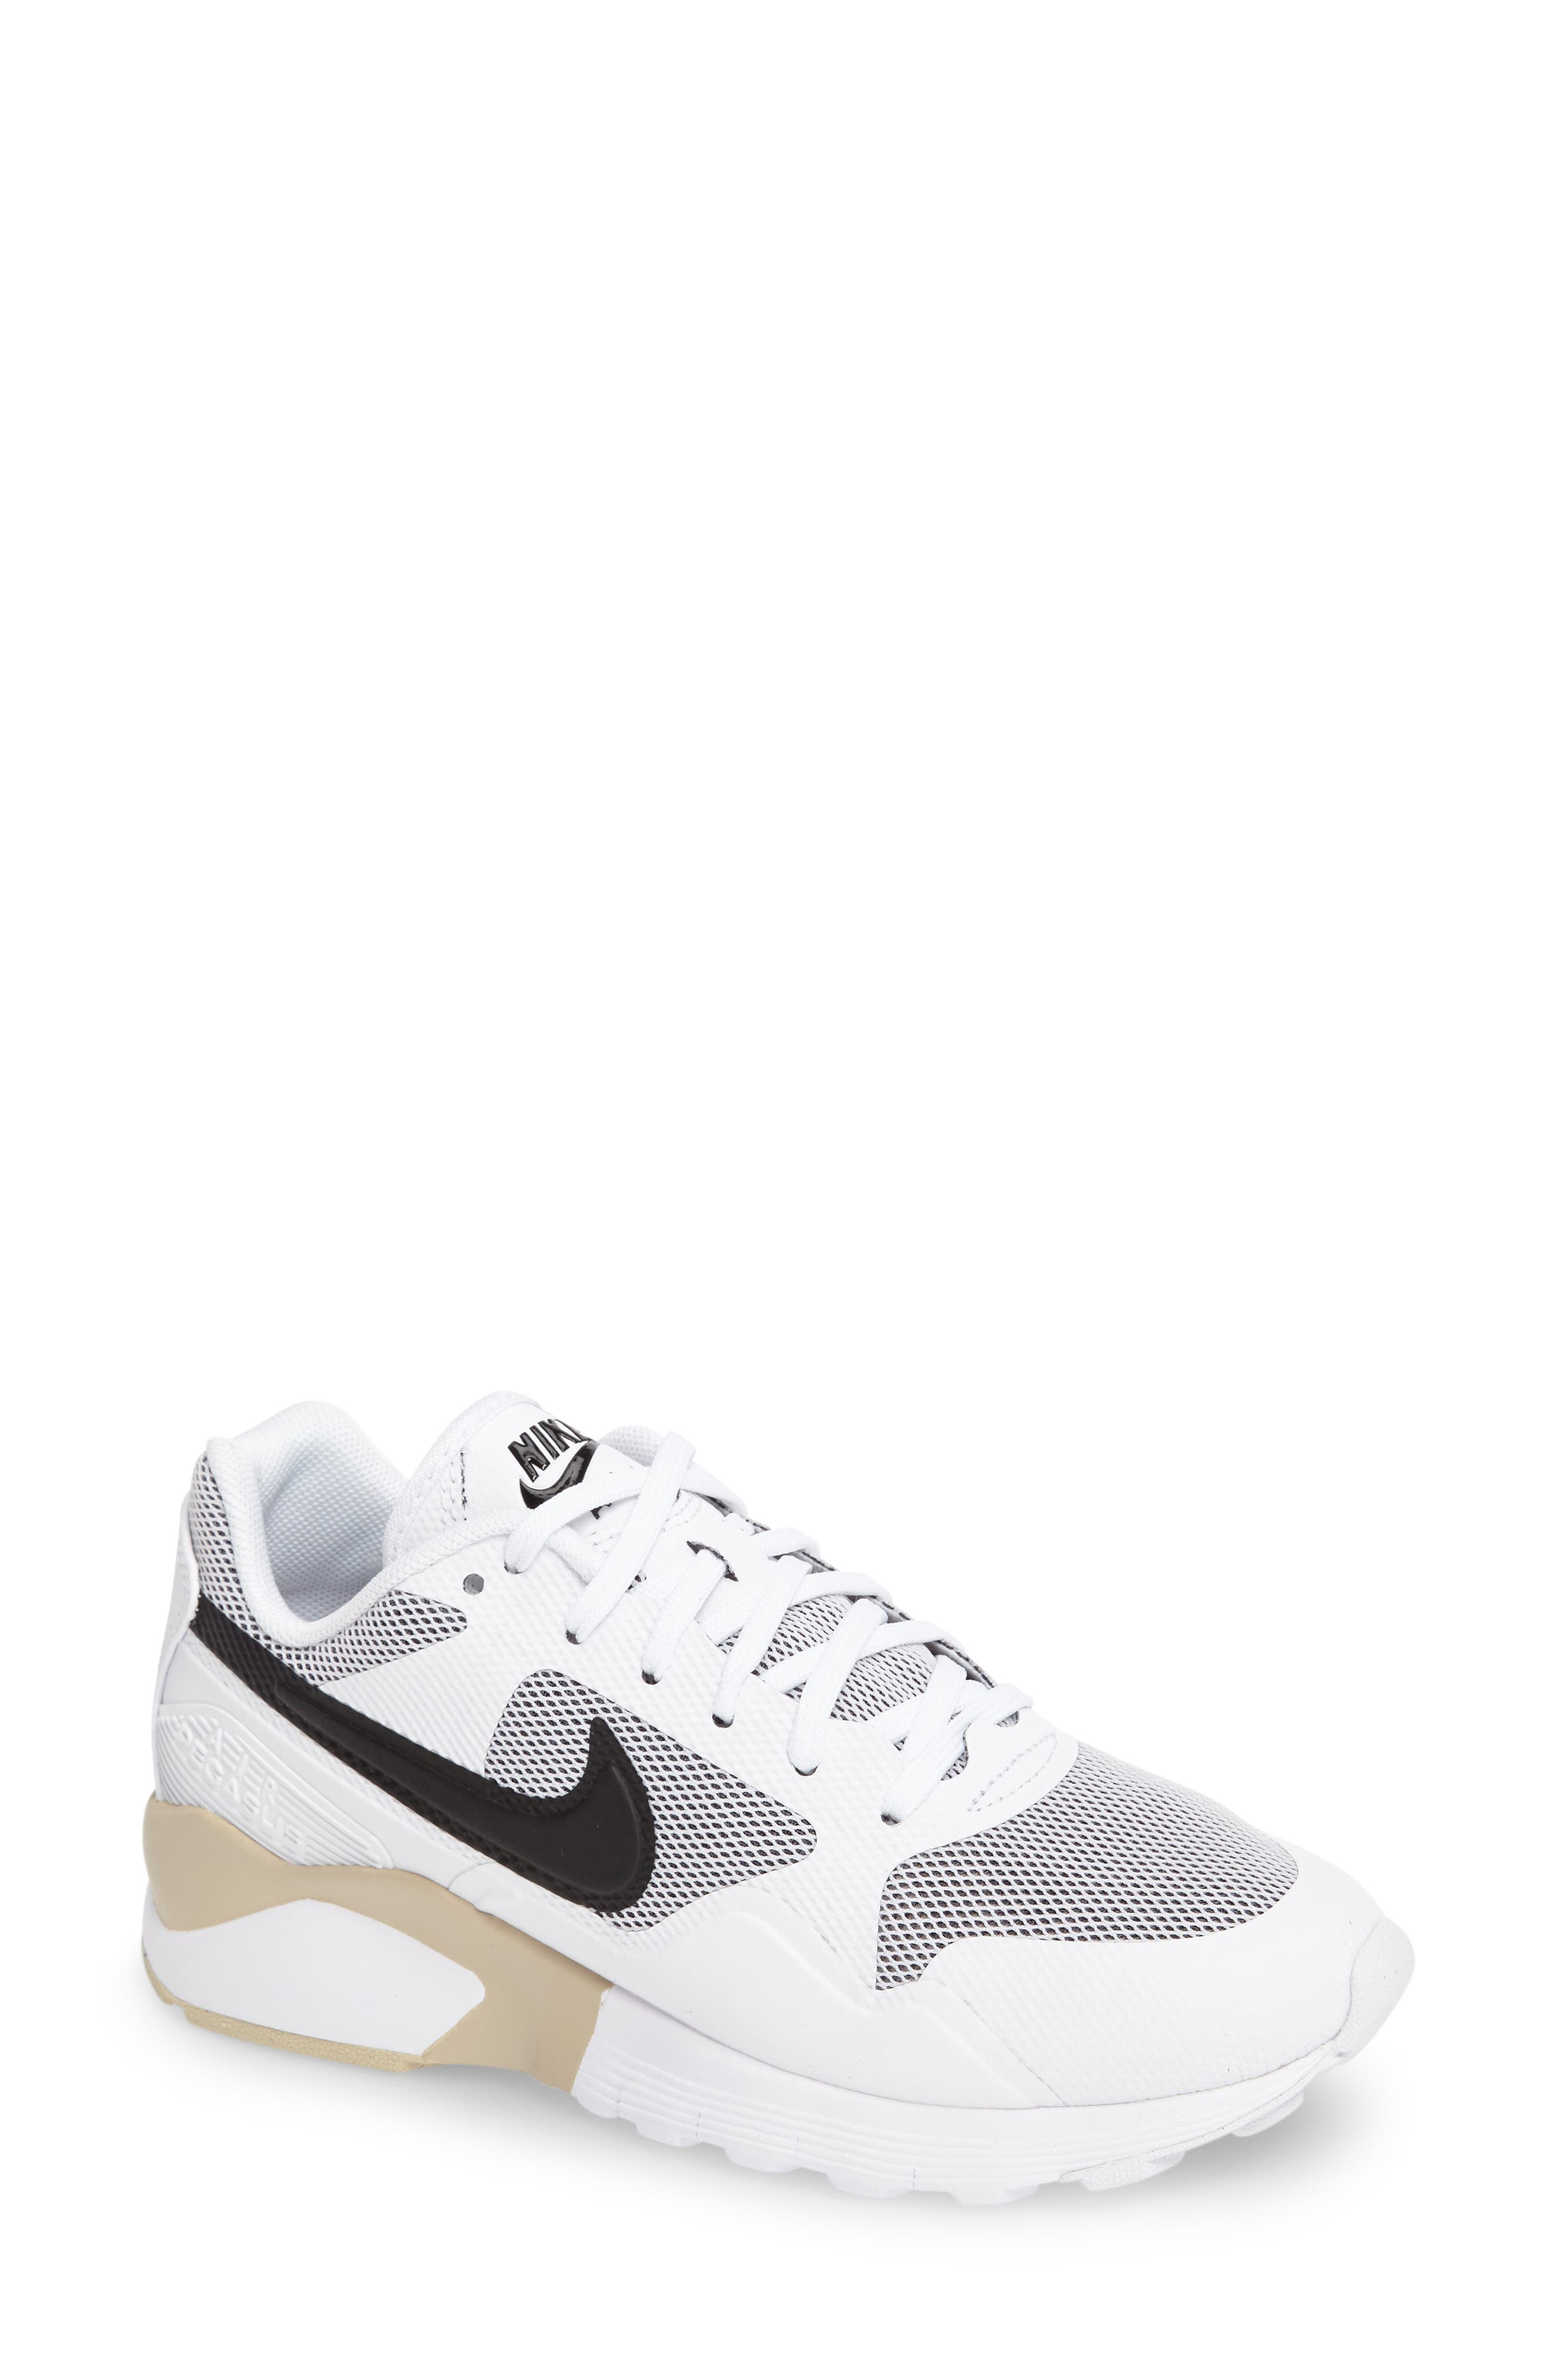 sneakers for cheap 66942 d8771 ... promo code for nike air max 90 gs korall sko on salg 0d56a 8d0ec